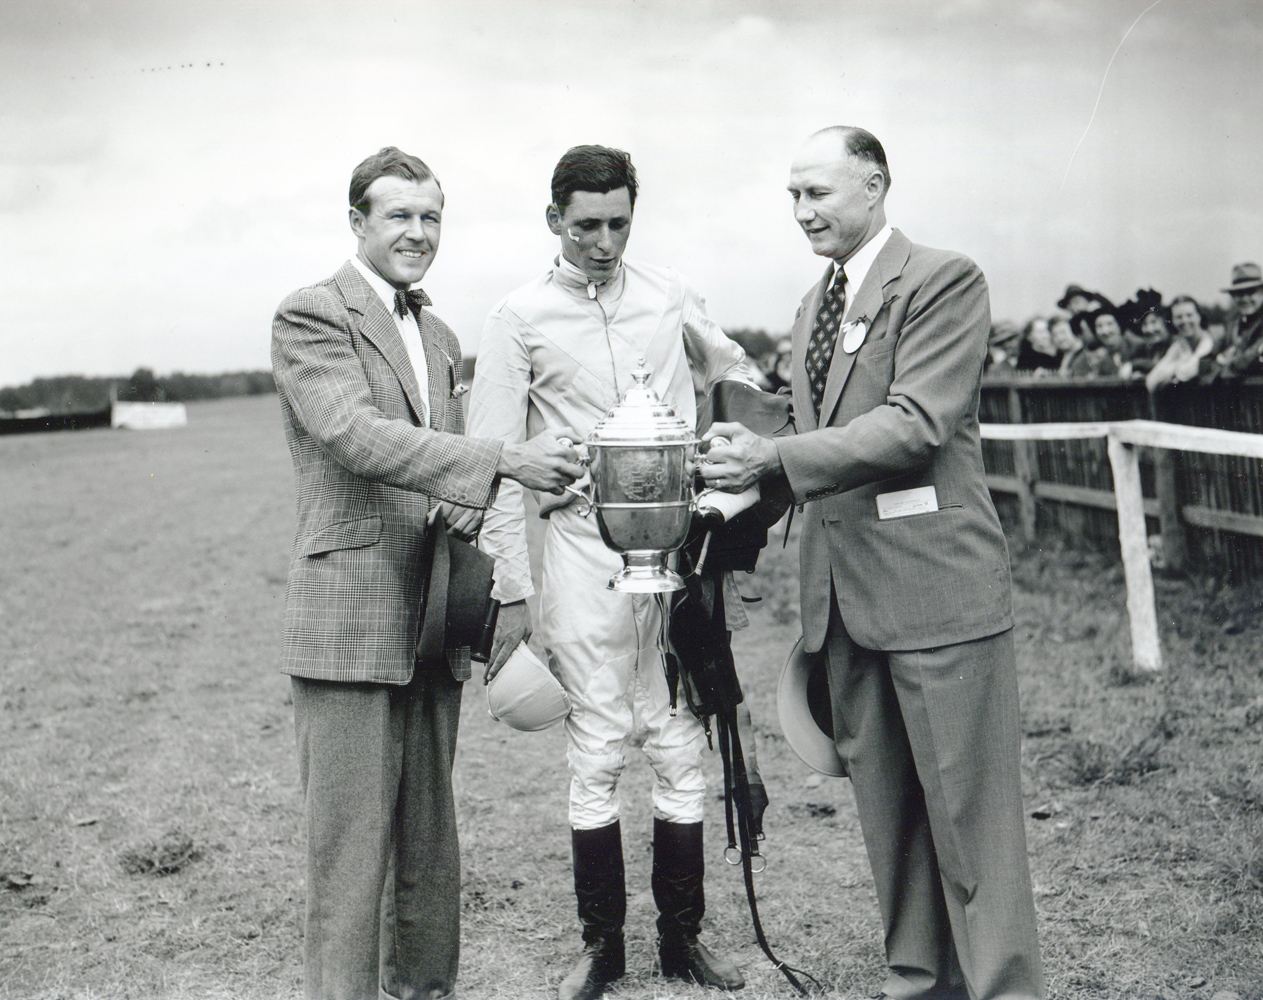 Trainer W. Burling Cocks, jockey D.M. Smitwick, and South Carolina Governor J. Strom Thurmond at the 1948 Carolina Cup trophy presentation at Camden (Keeneland Library Morgan Collection/Museum Collection)